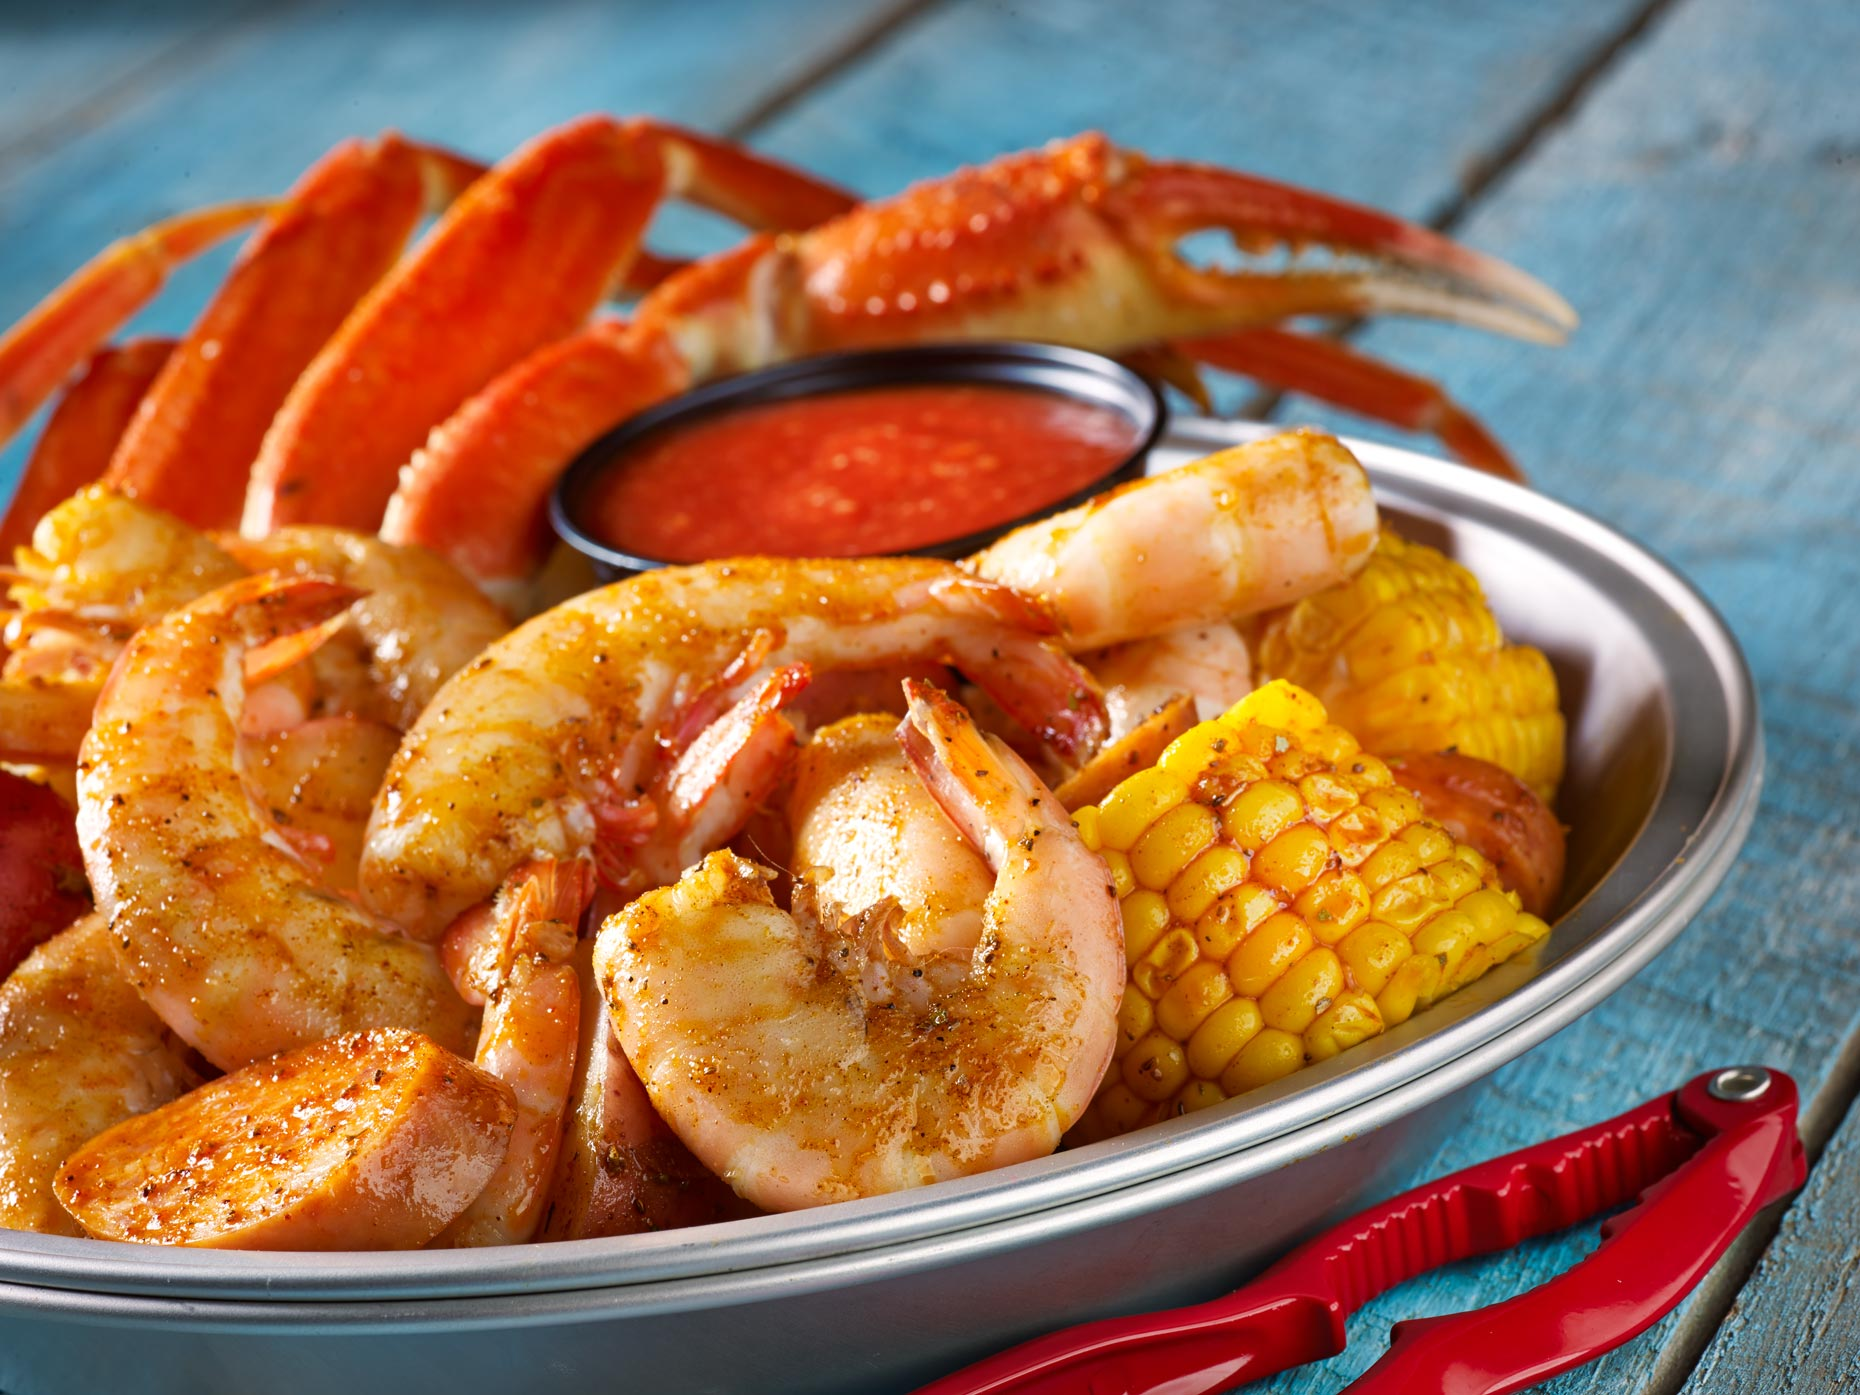 Food Photography | Shrimp, Crab & Corn